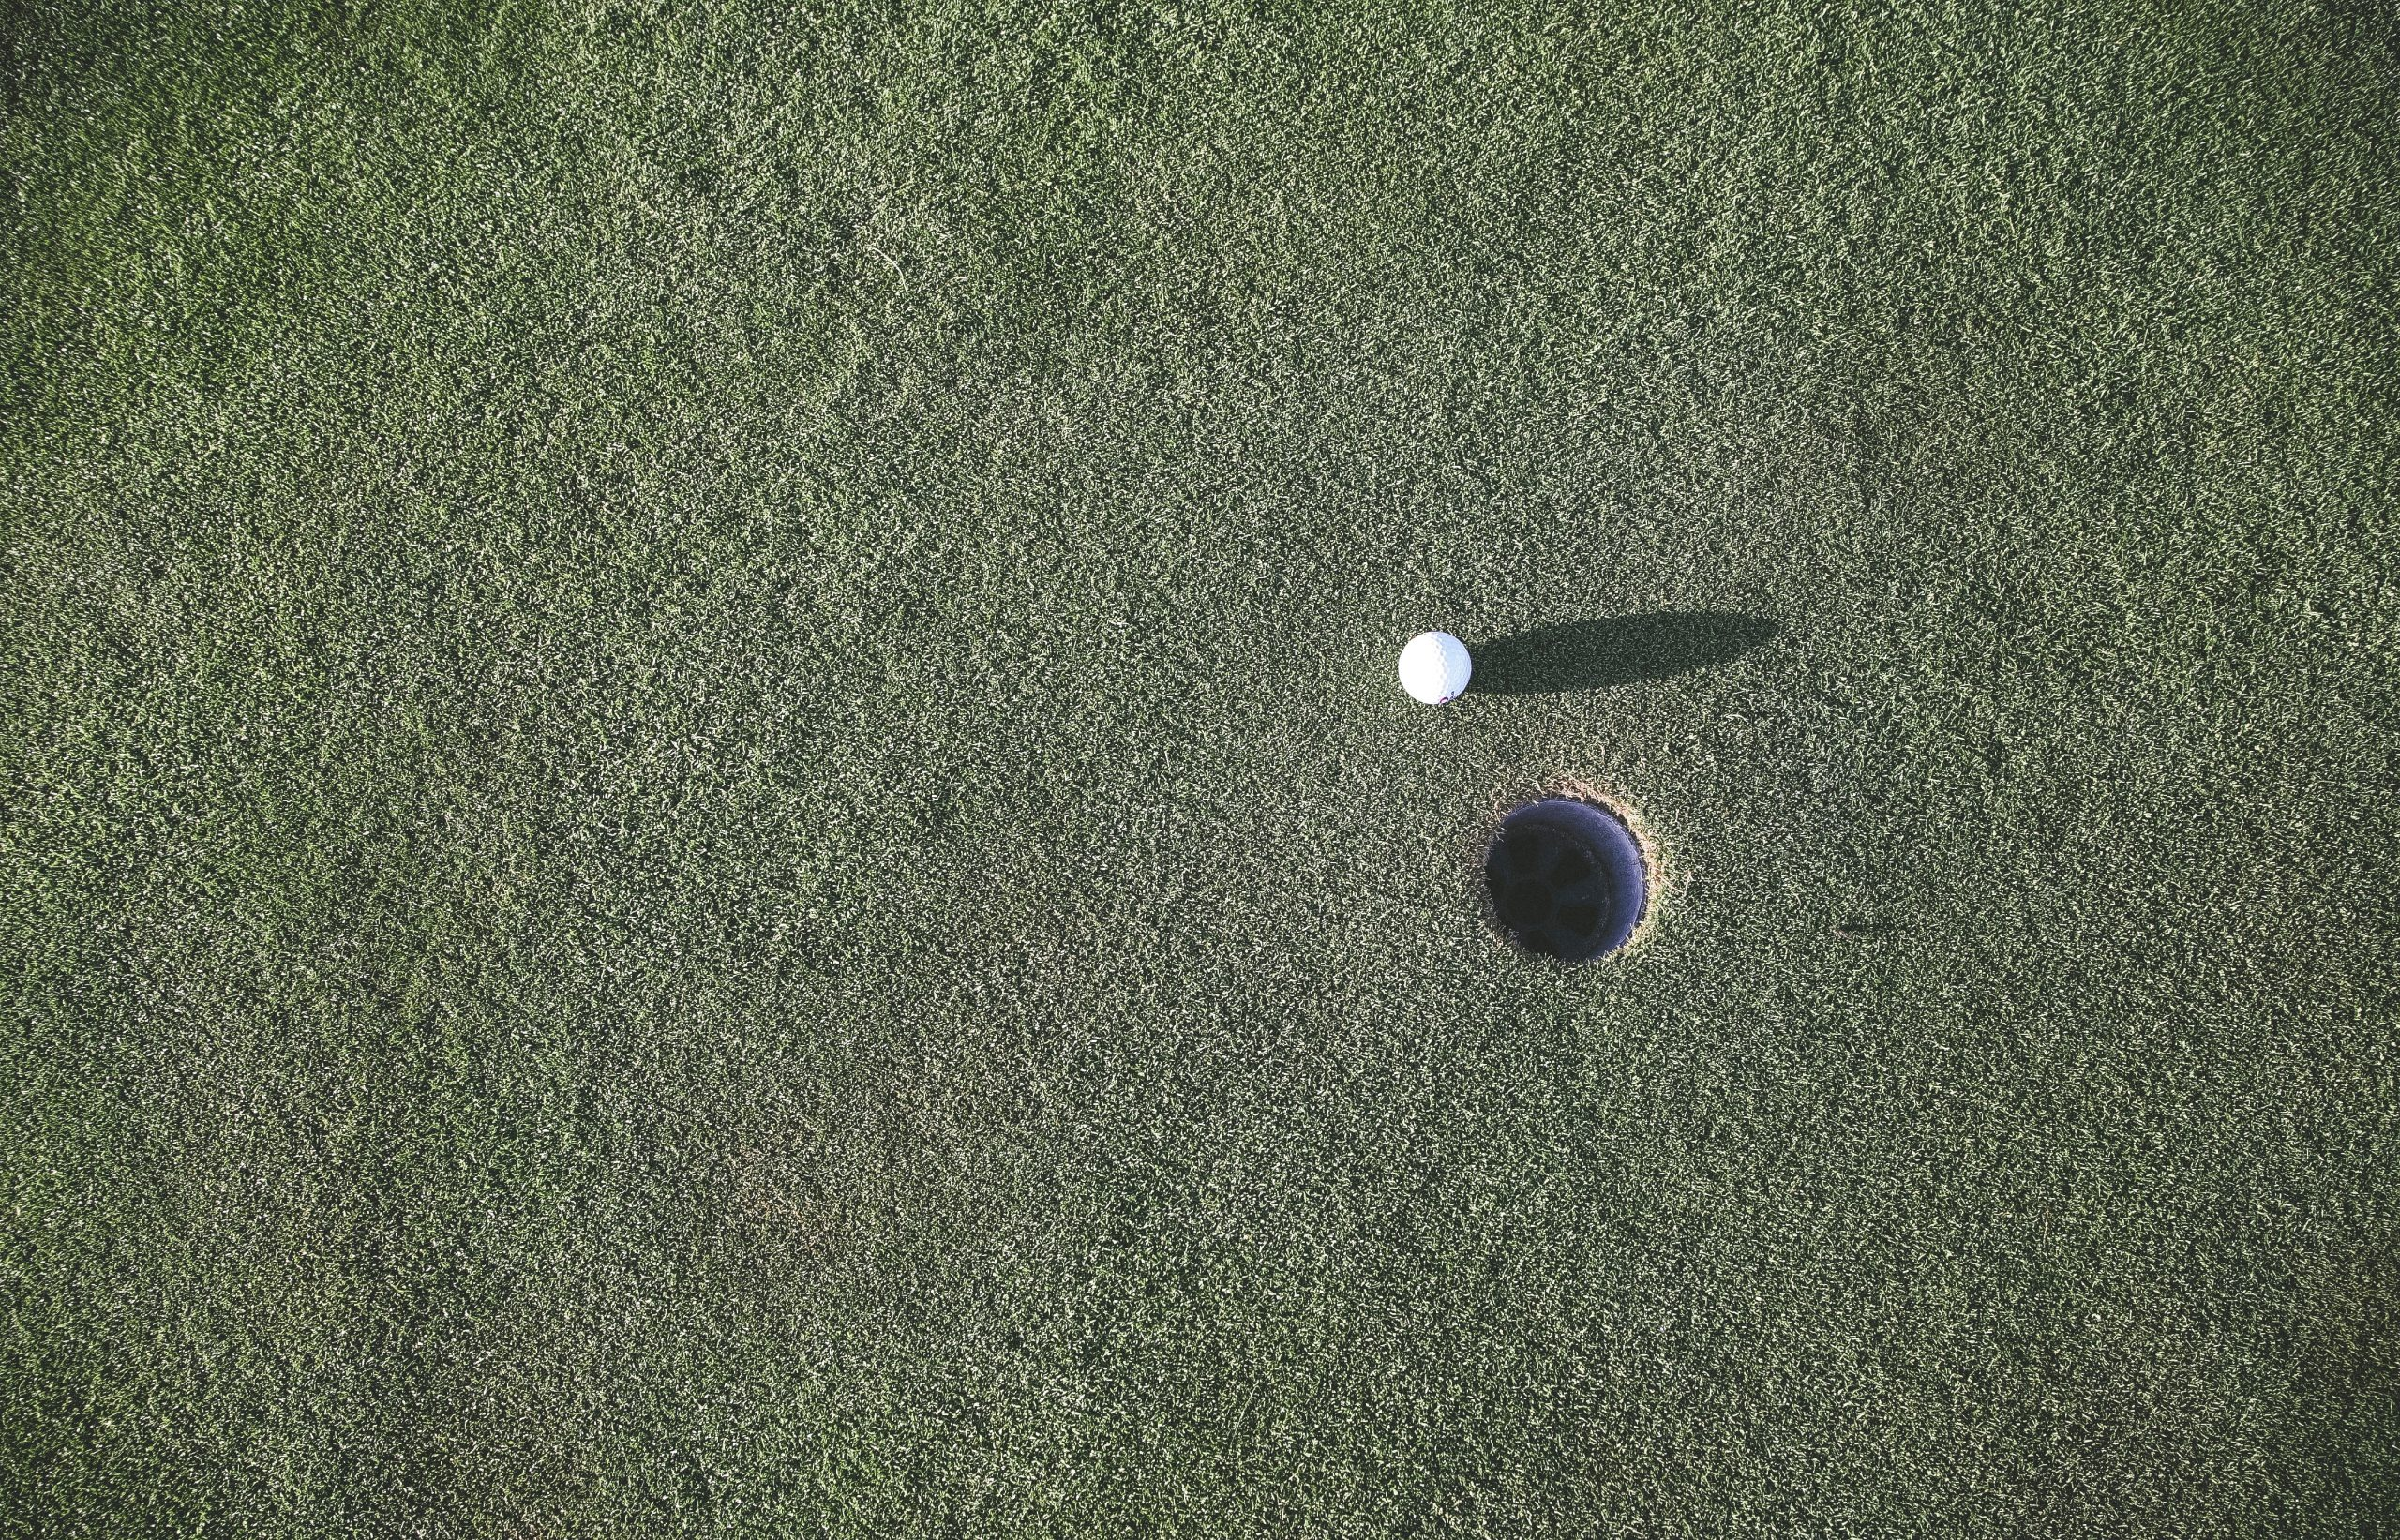 White golf ball with backspin on it near hole